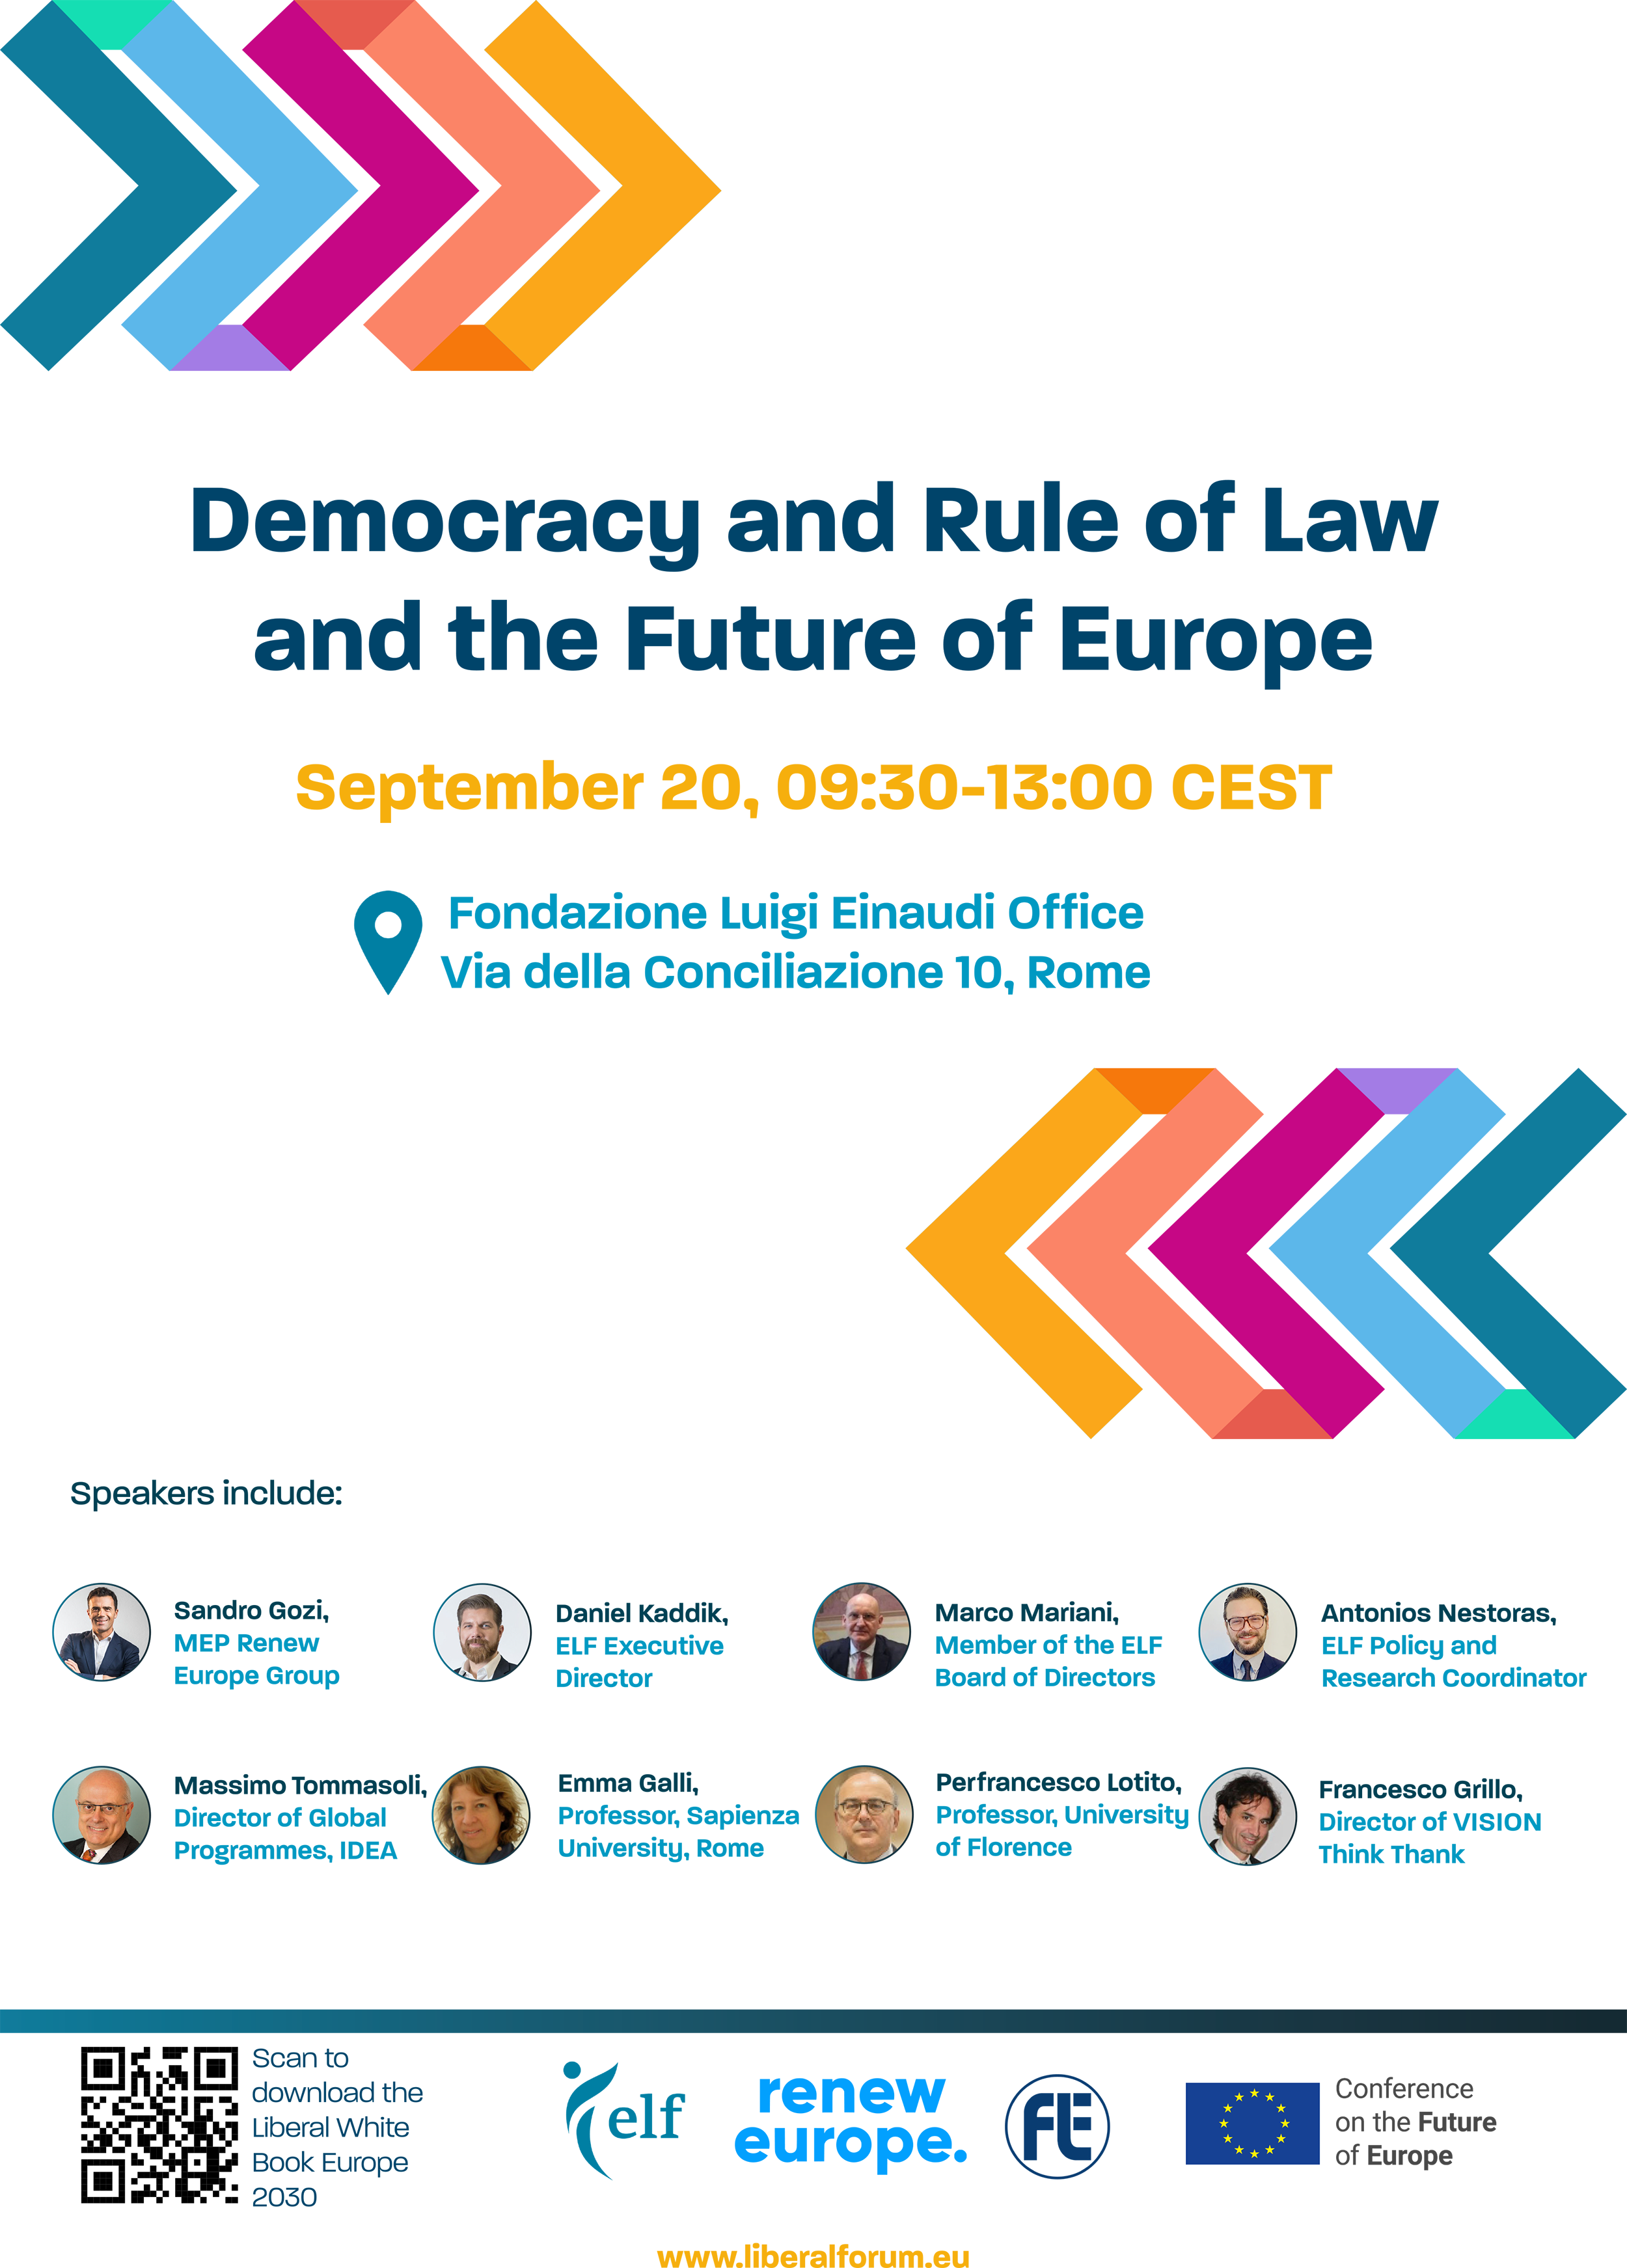 Democracy and Rule of Law and the Future of Europe